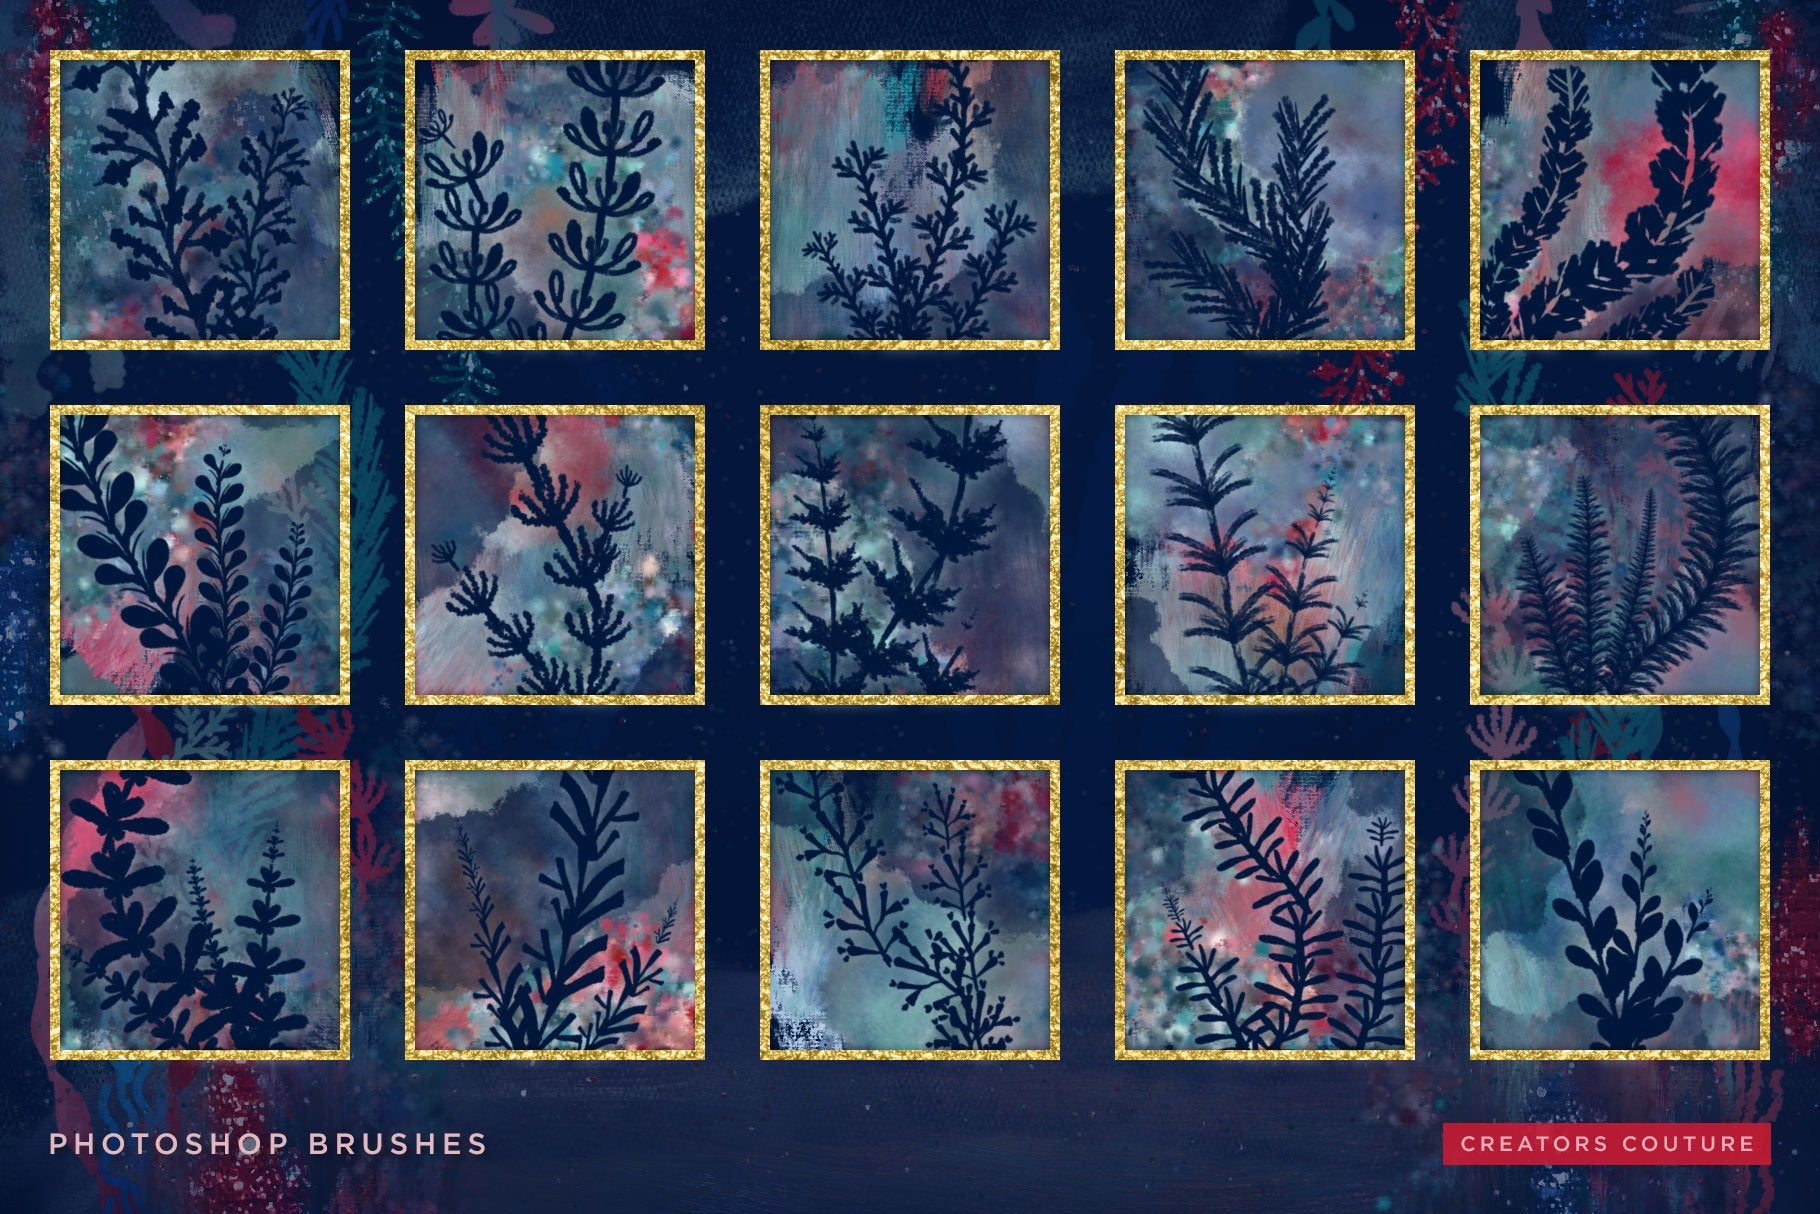 Undersea Dreams: Seaweed and Coral Photoshop Brushes - Creators Couture